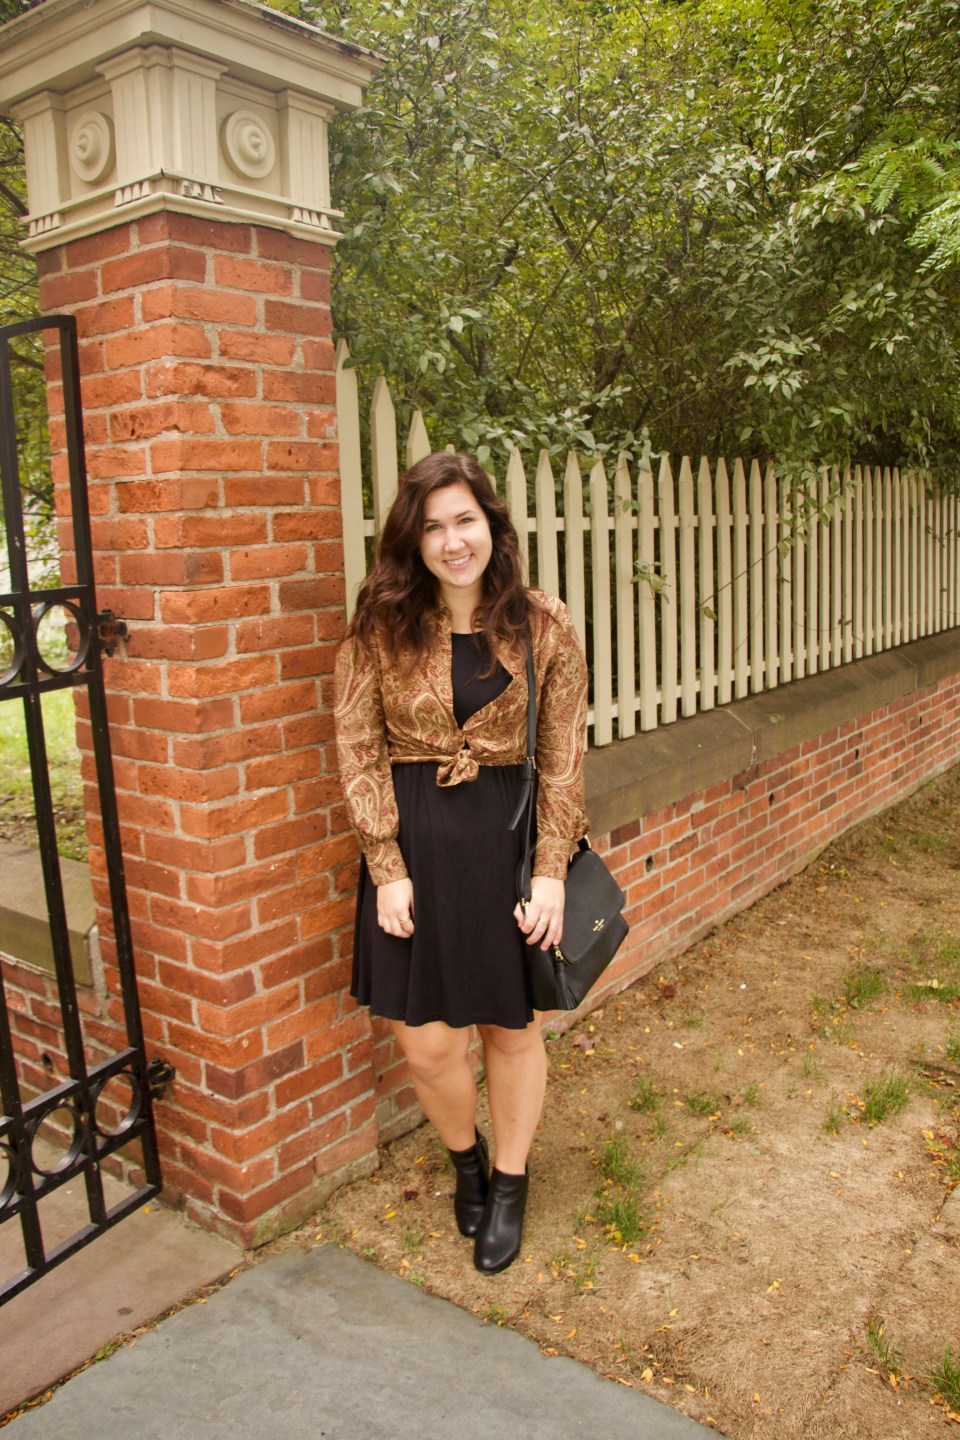 Using Vintage Fashion in Today's Wardrobe